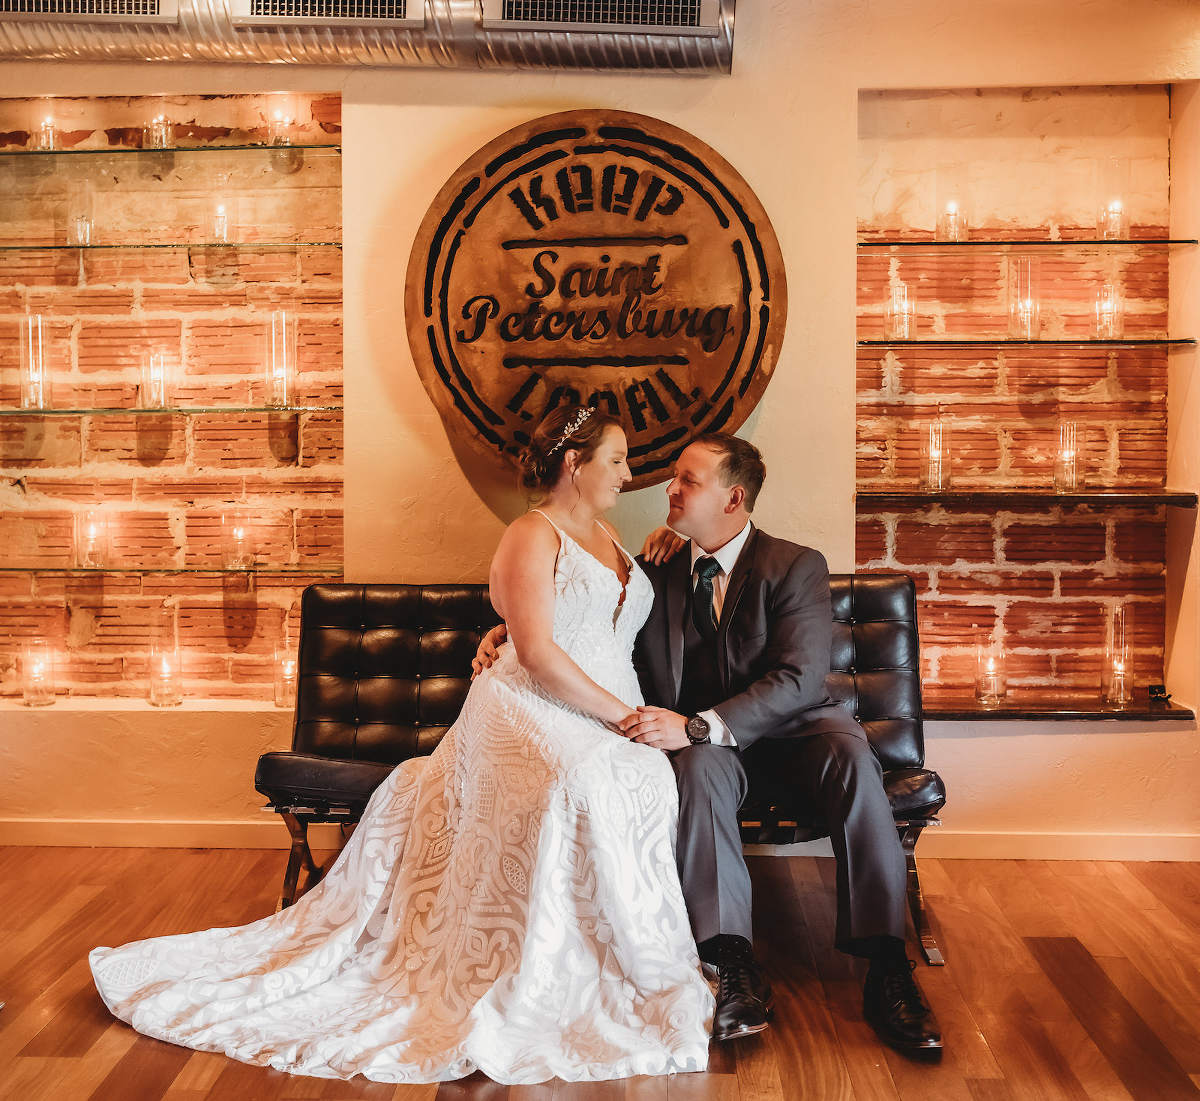 Florida Bride and Groom Romantic Wedding Portrait Inside Historic Venue in Downtown Saint Petersburg, Keep Local Custom Sign, Exposed Brick with Candlelight Lighting, Bride Wearing Blush By Hayley Paige Ivory Delta Gown Style 1751 | Unique Tampa Bay Wedding Venue NOVA 535 in Downtown St. Petersburg